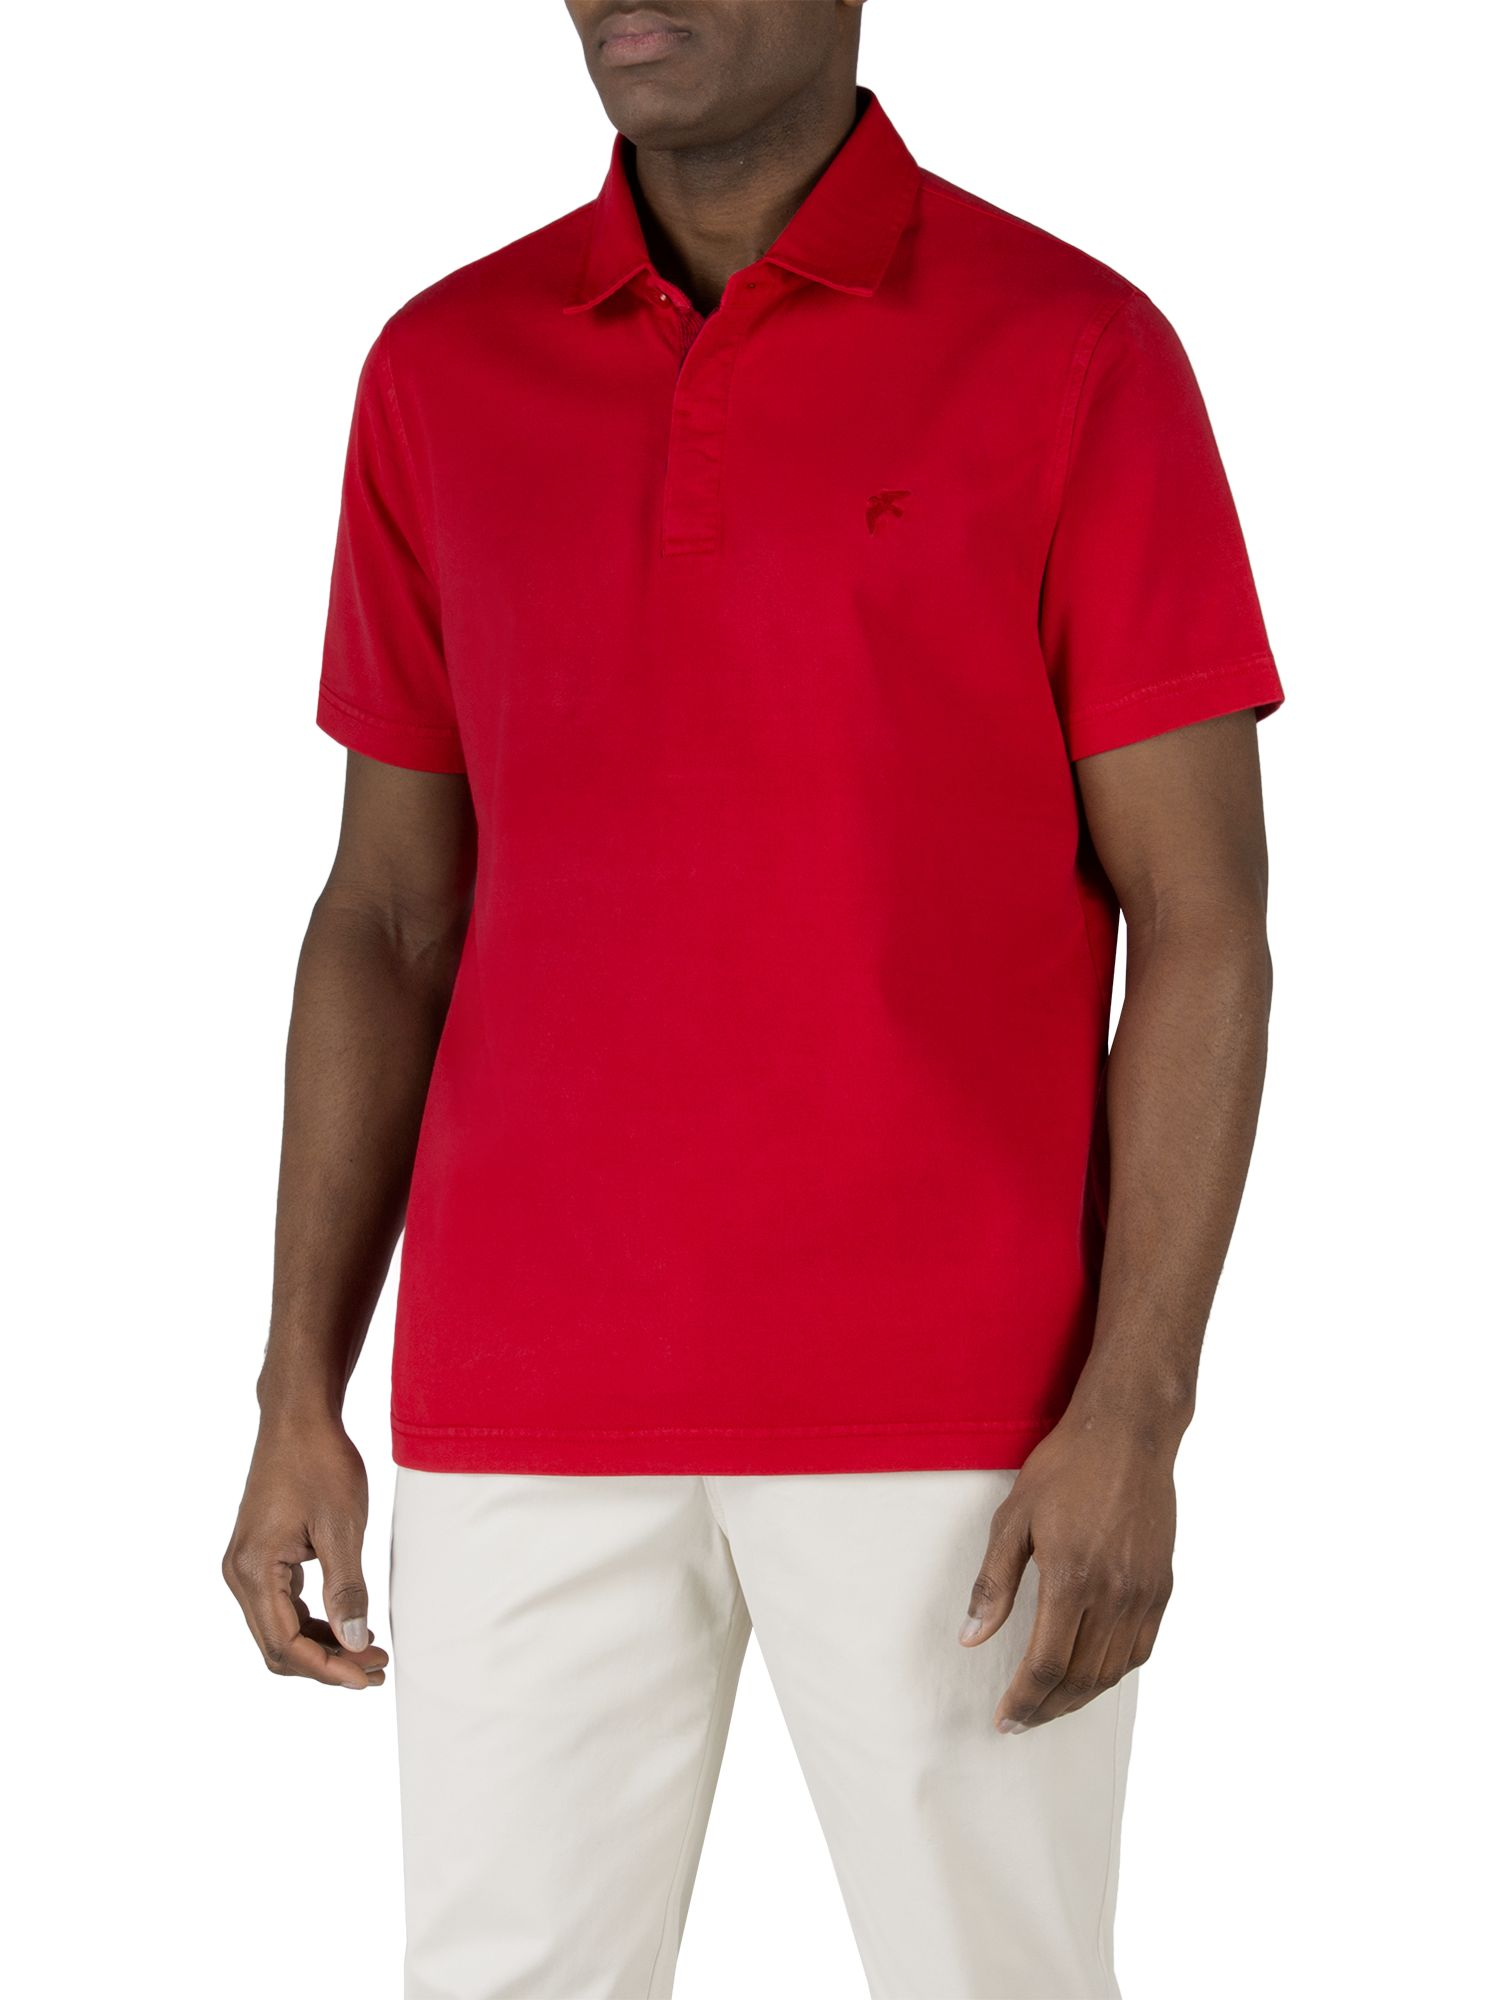 Thameside short sleeve rugby shirt